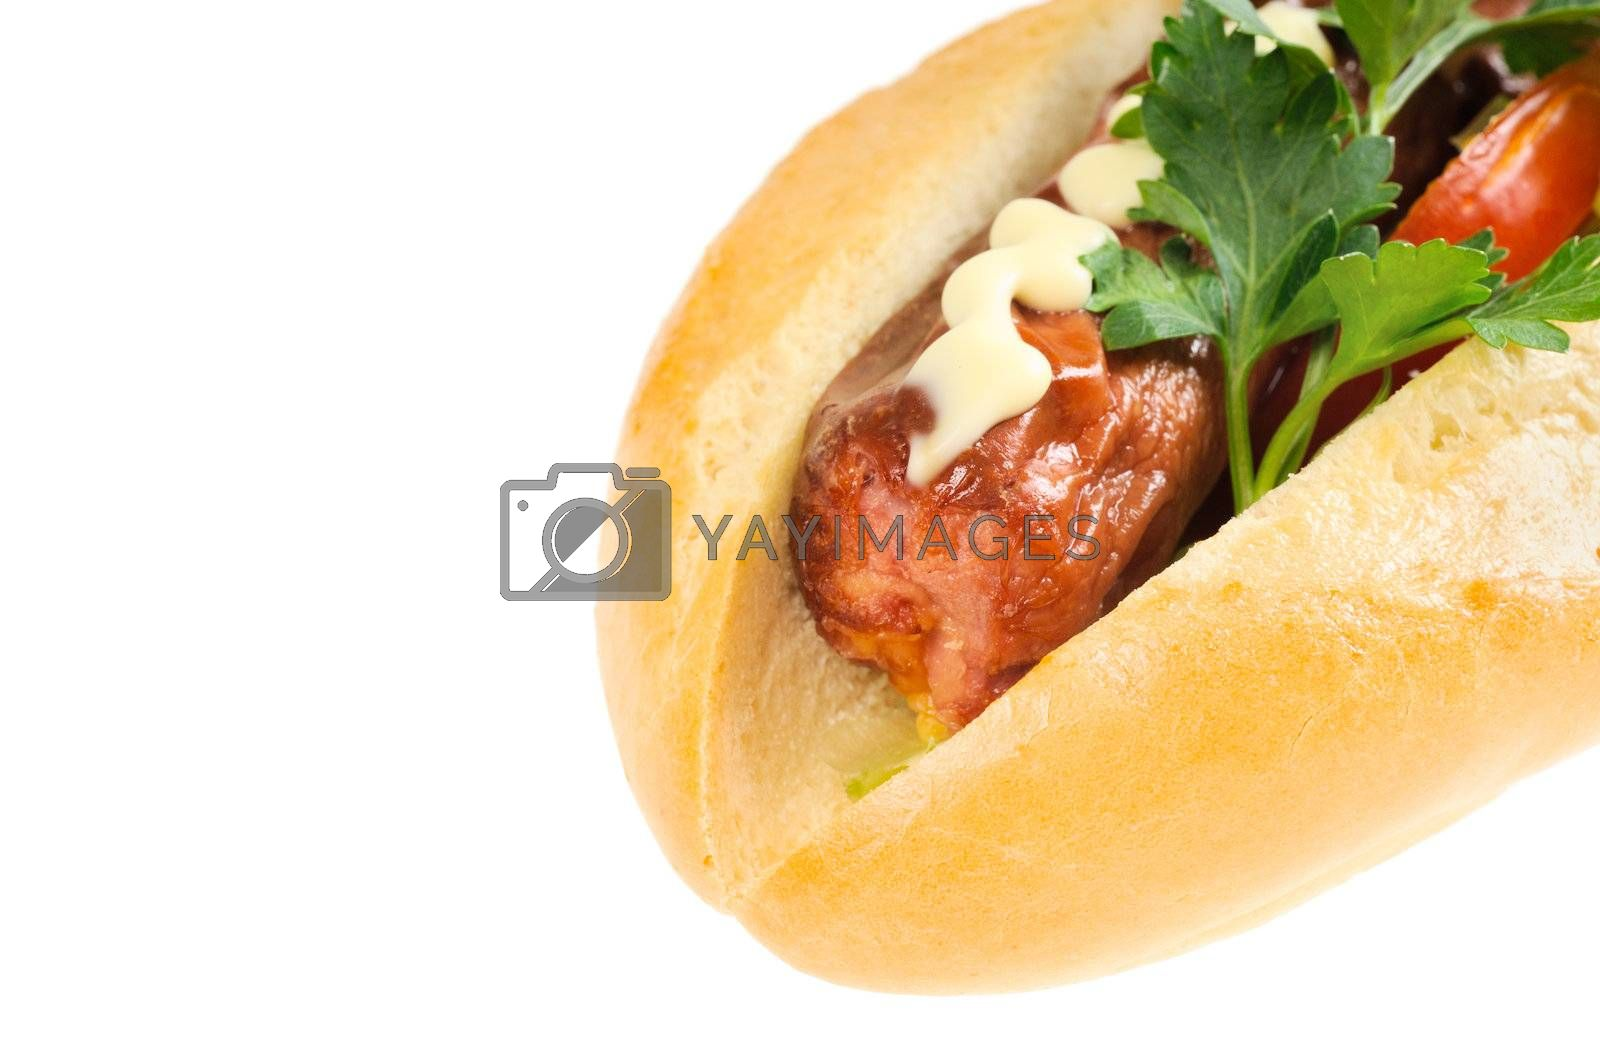 Royalty free image of Tasty and delicious hotdog by grauvision